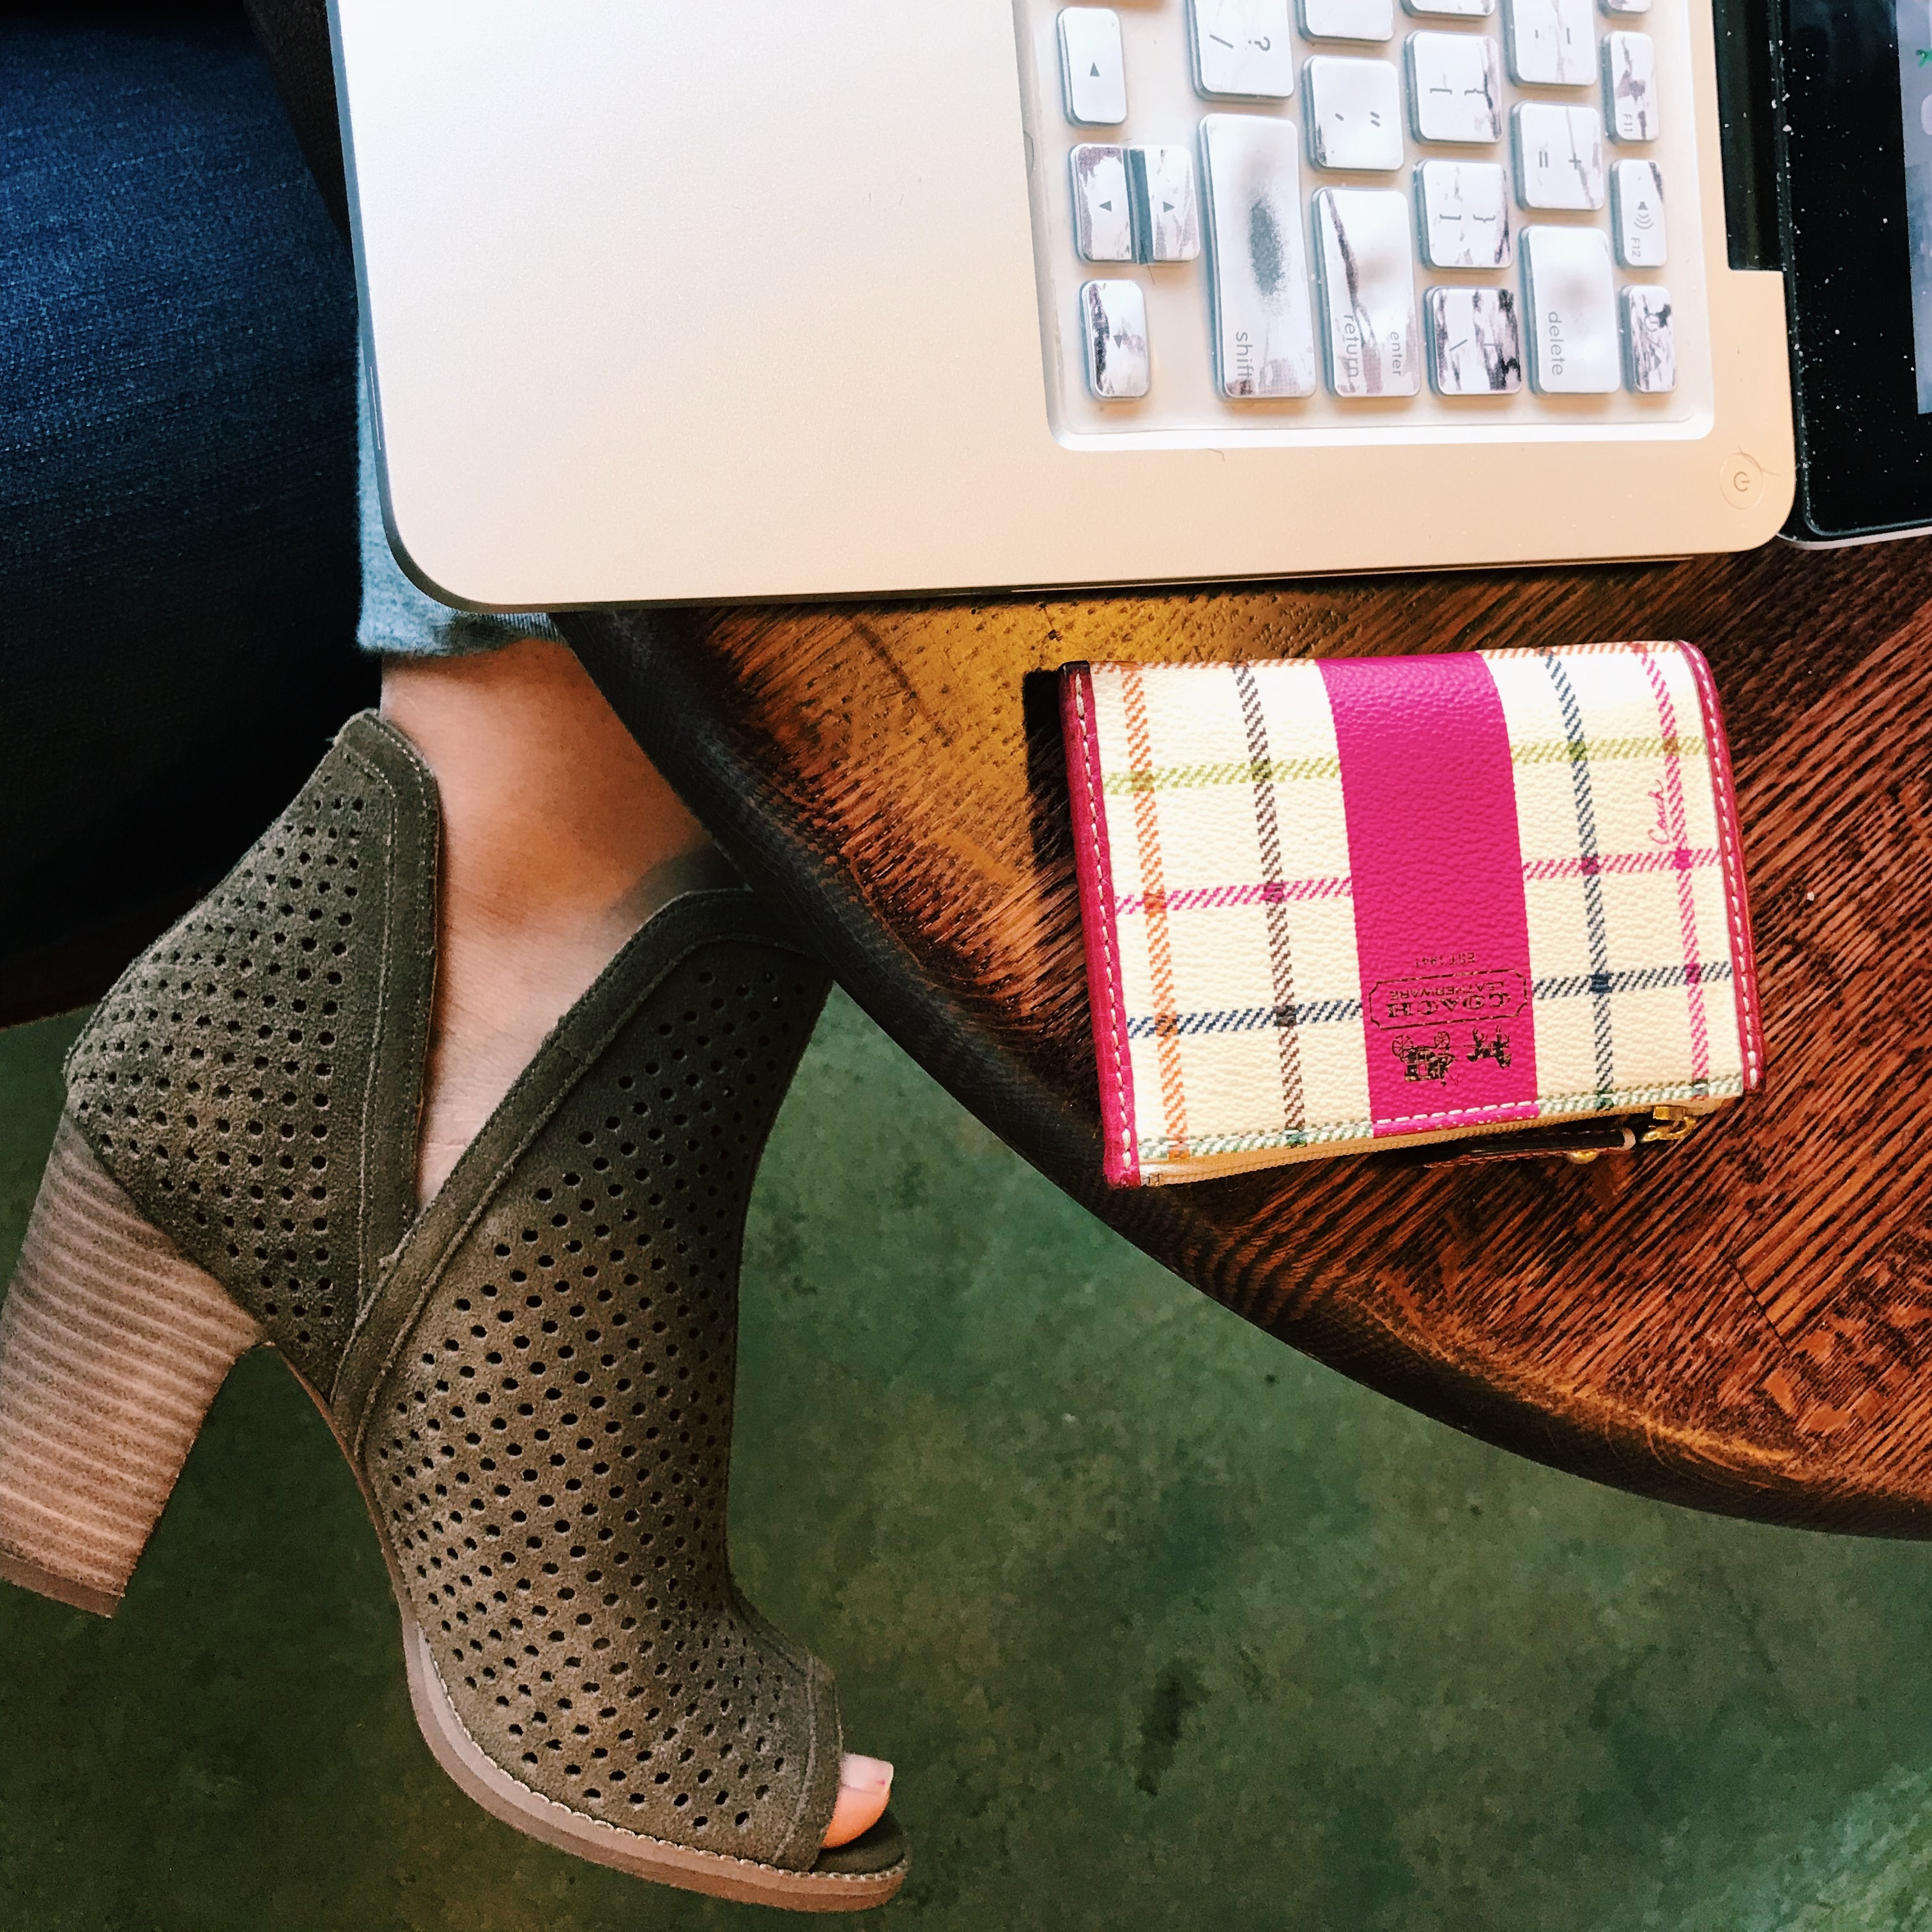 Southern lifestyle blogger shares the best recipes, blog posts, and articles from the first week of November in Friday Favorites. // block heel ankle boots, lucky brand larise booties, coach card case, leather coin purse, chic accessories for women